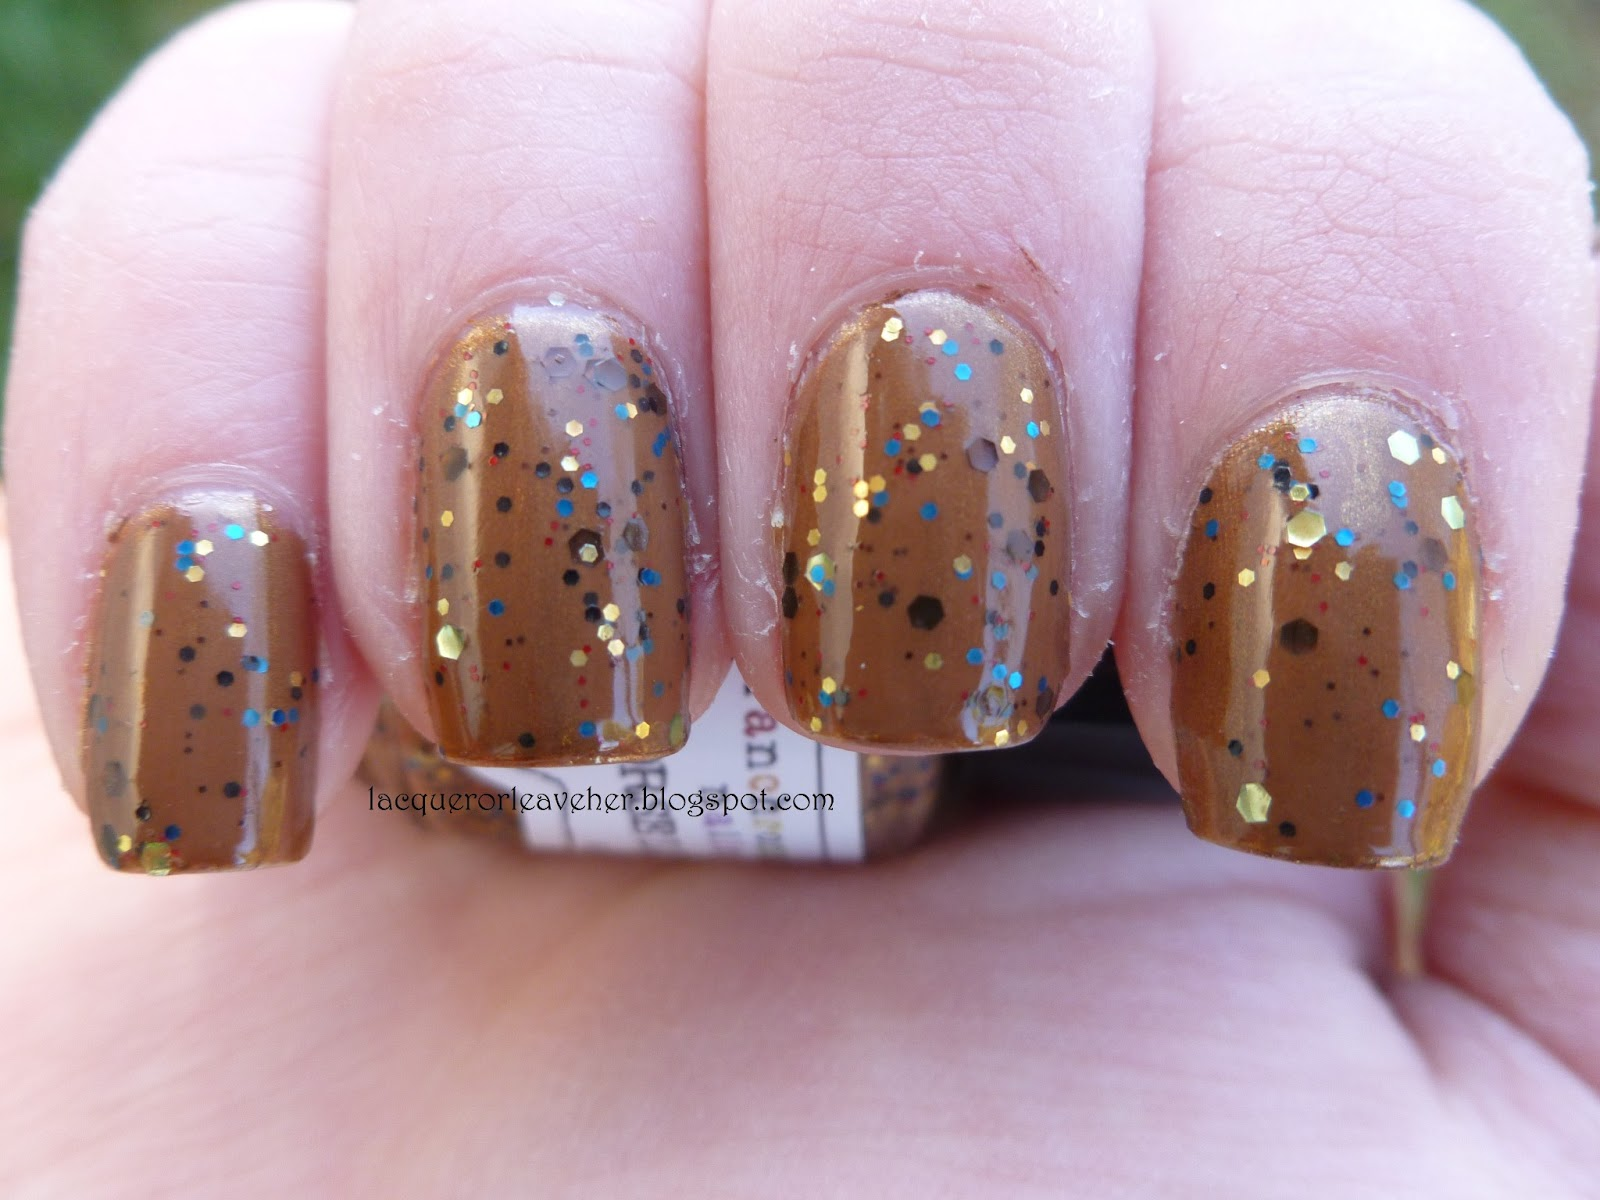 Lacquer or Leave Her!: Indie-licious Review: Fanchromatic Nails part 2